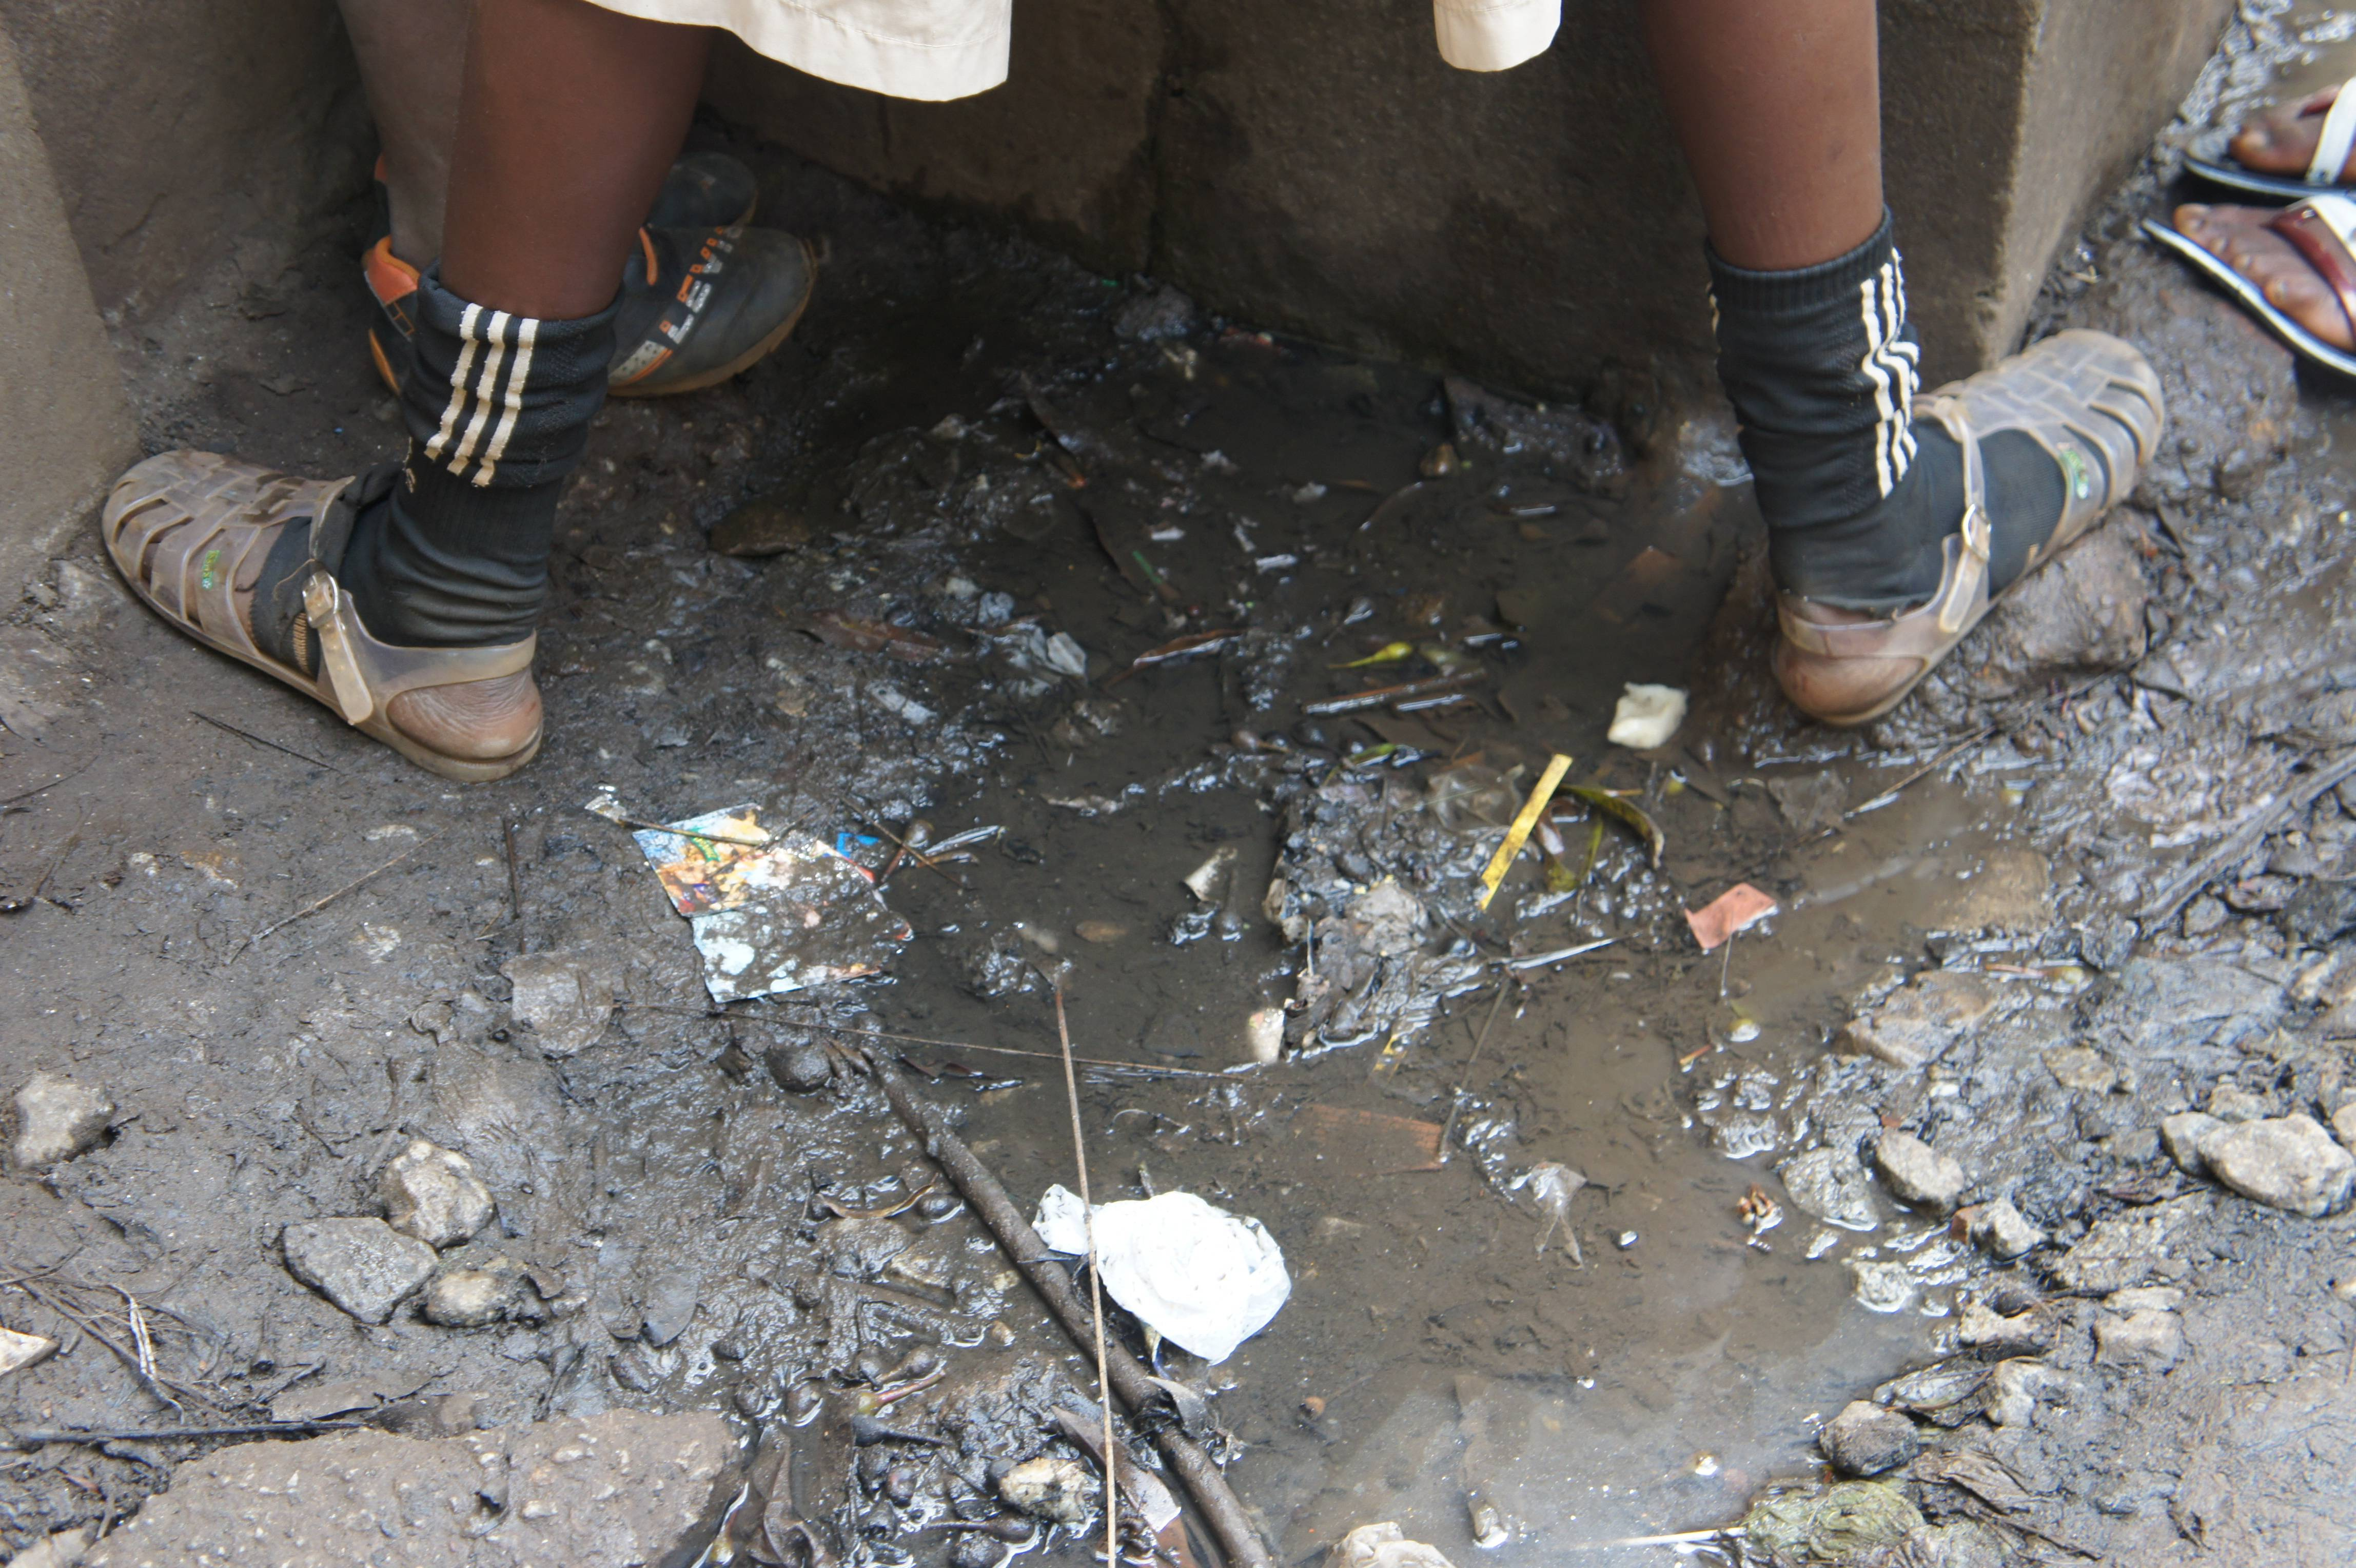 Student Standing in Dirty Water